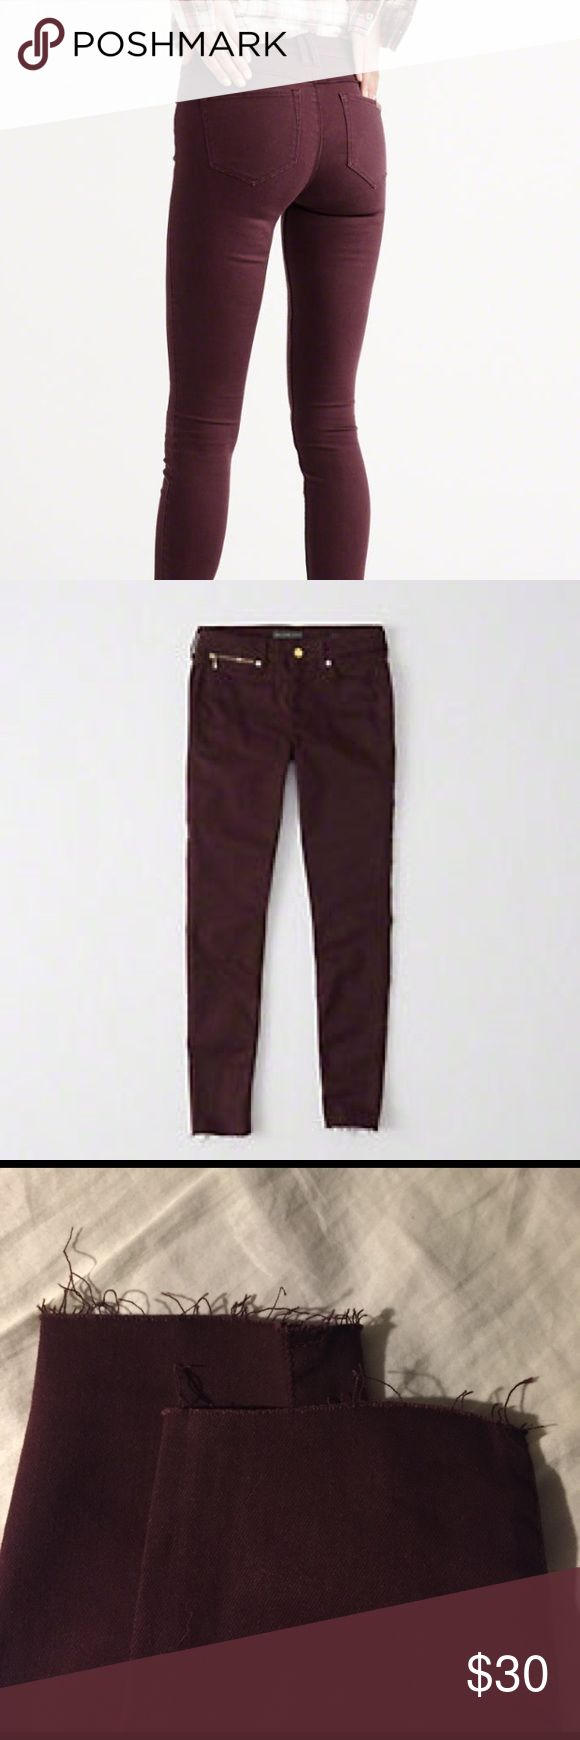 Abercrombie and Fitch Super Skinny Jean Brand new with tags! Super skinny jeans! Color is Burgundy! Width: 26 Length: 29R Abercrombie & Fitch Pants Skinny